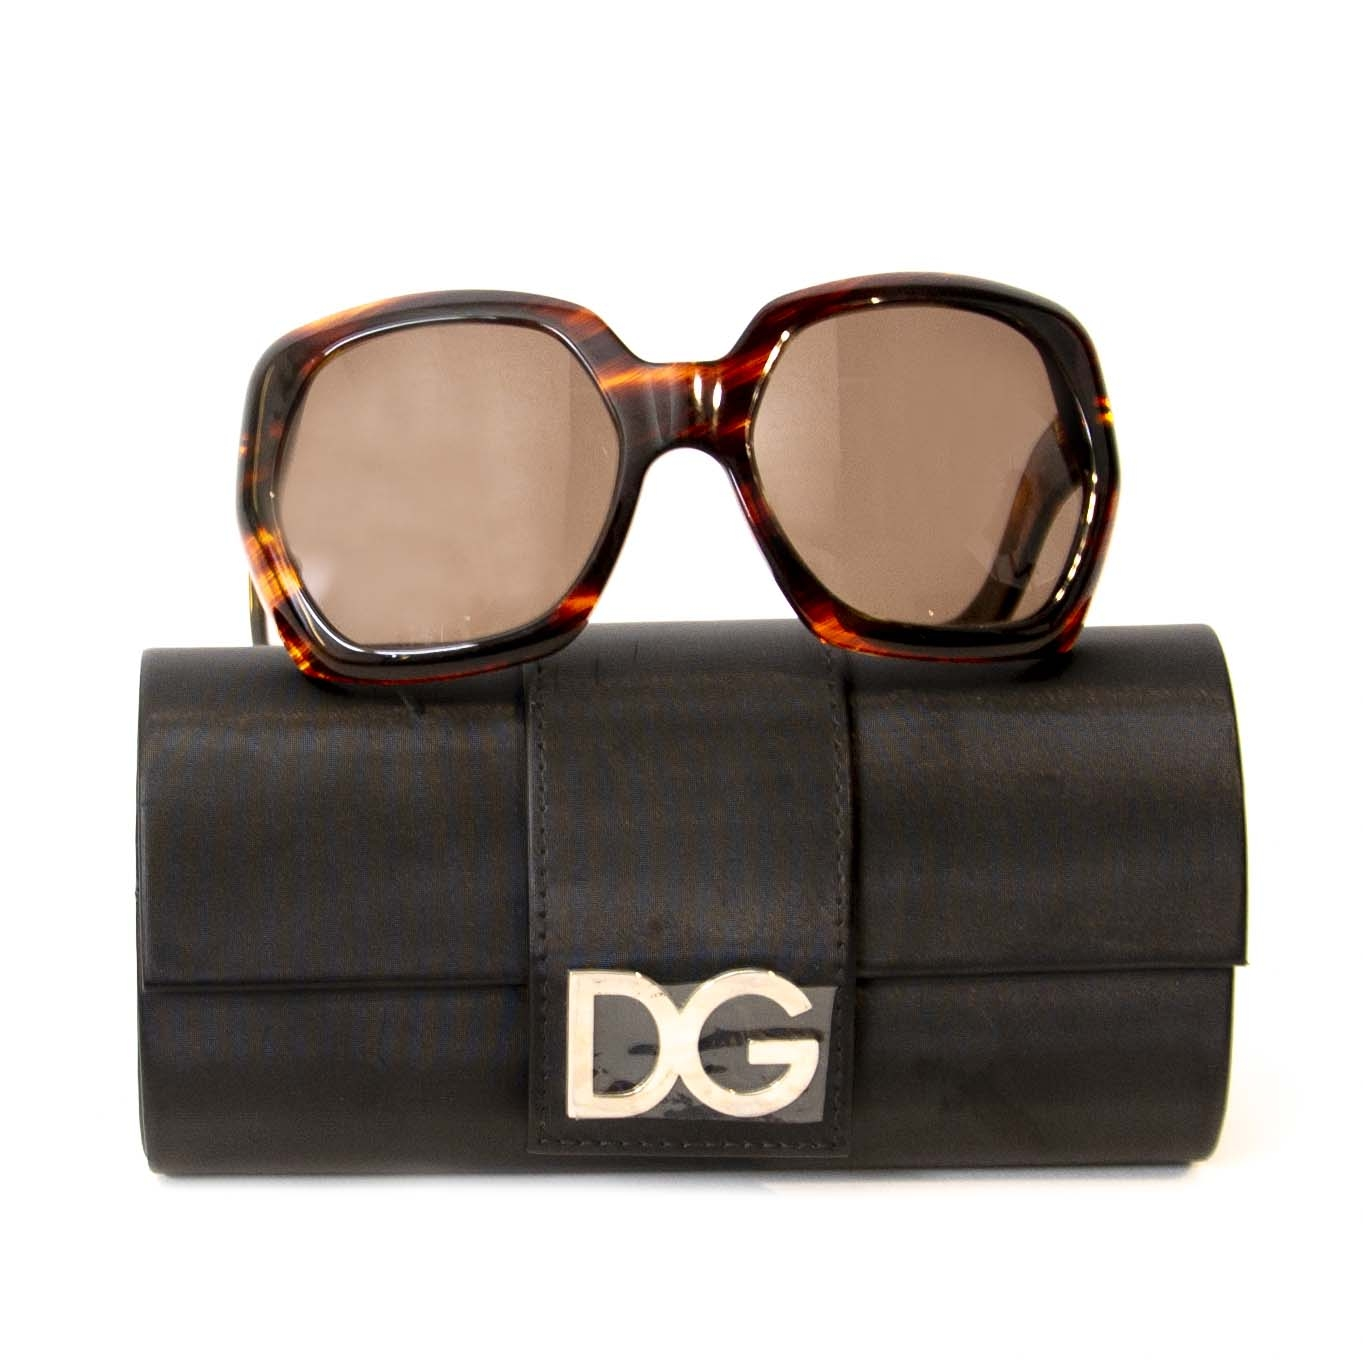 acheter en ligne seconde main Dolce & Gabbana Brown Sunglasses